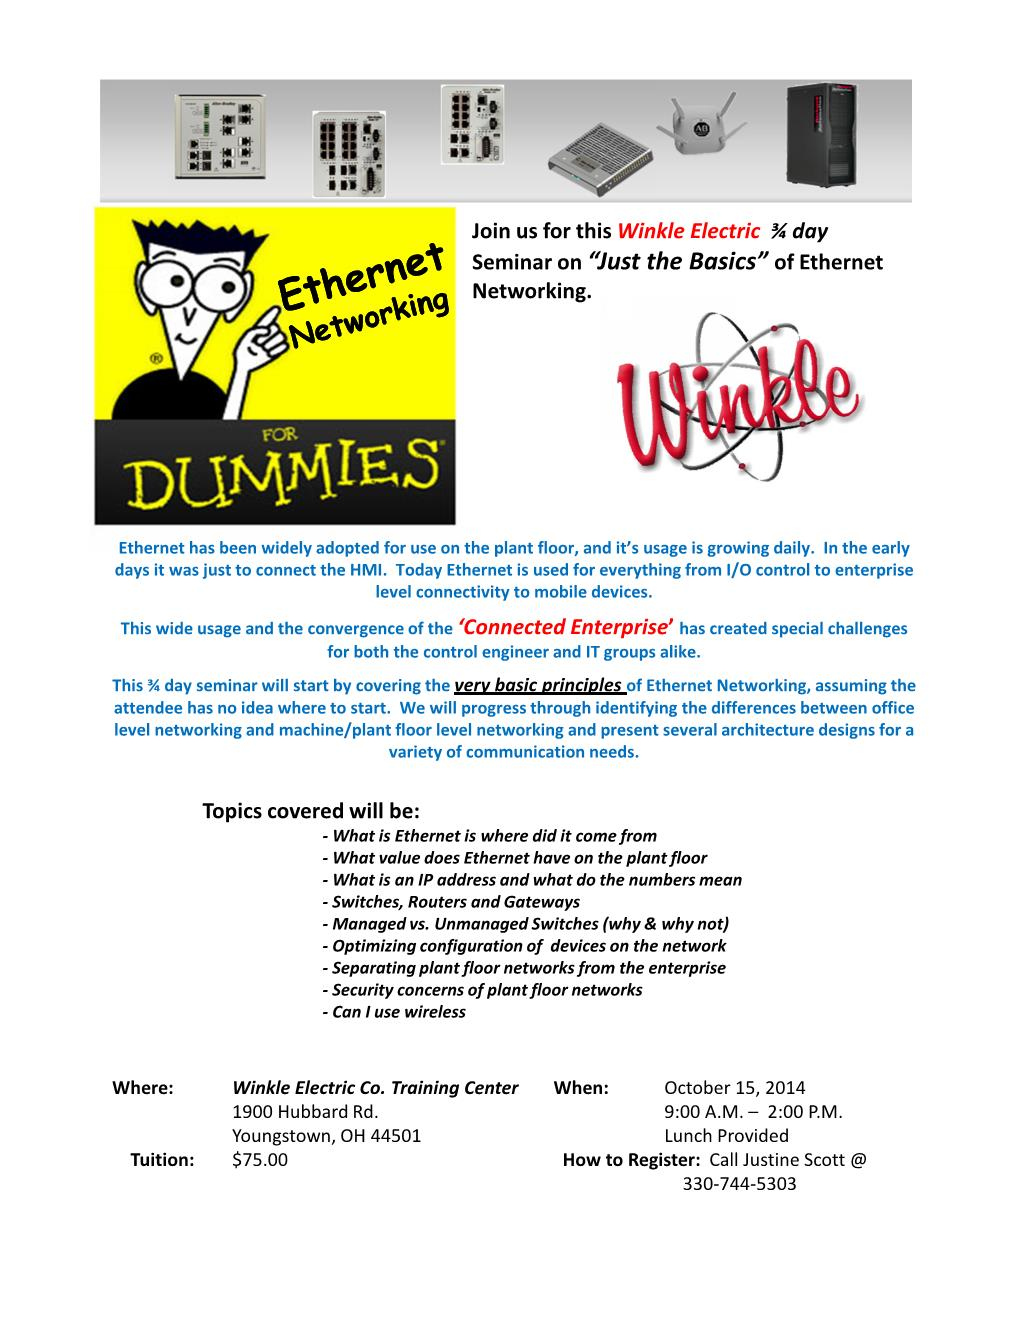 Ethernet For Dummies Class! | Winkle Electric Company, Inc.